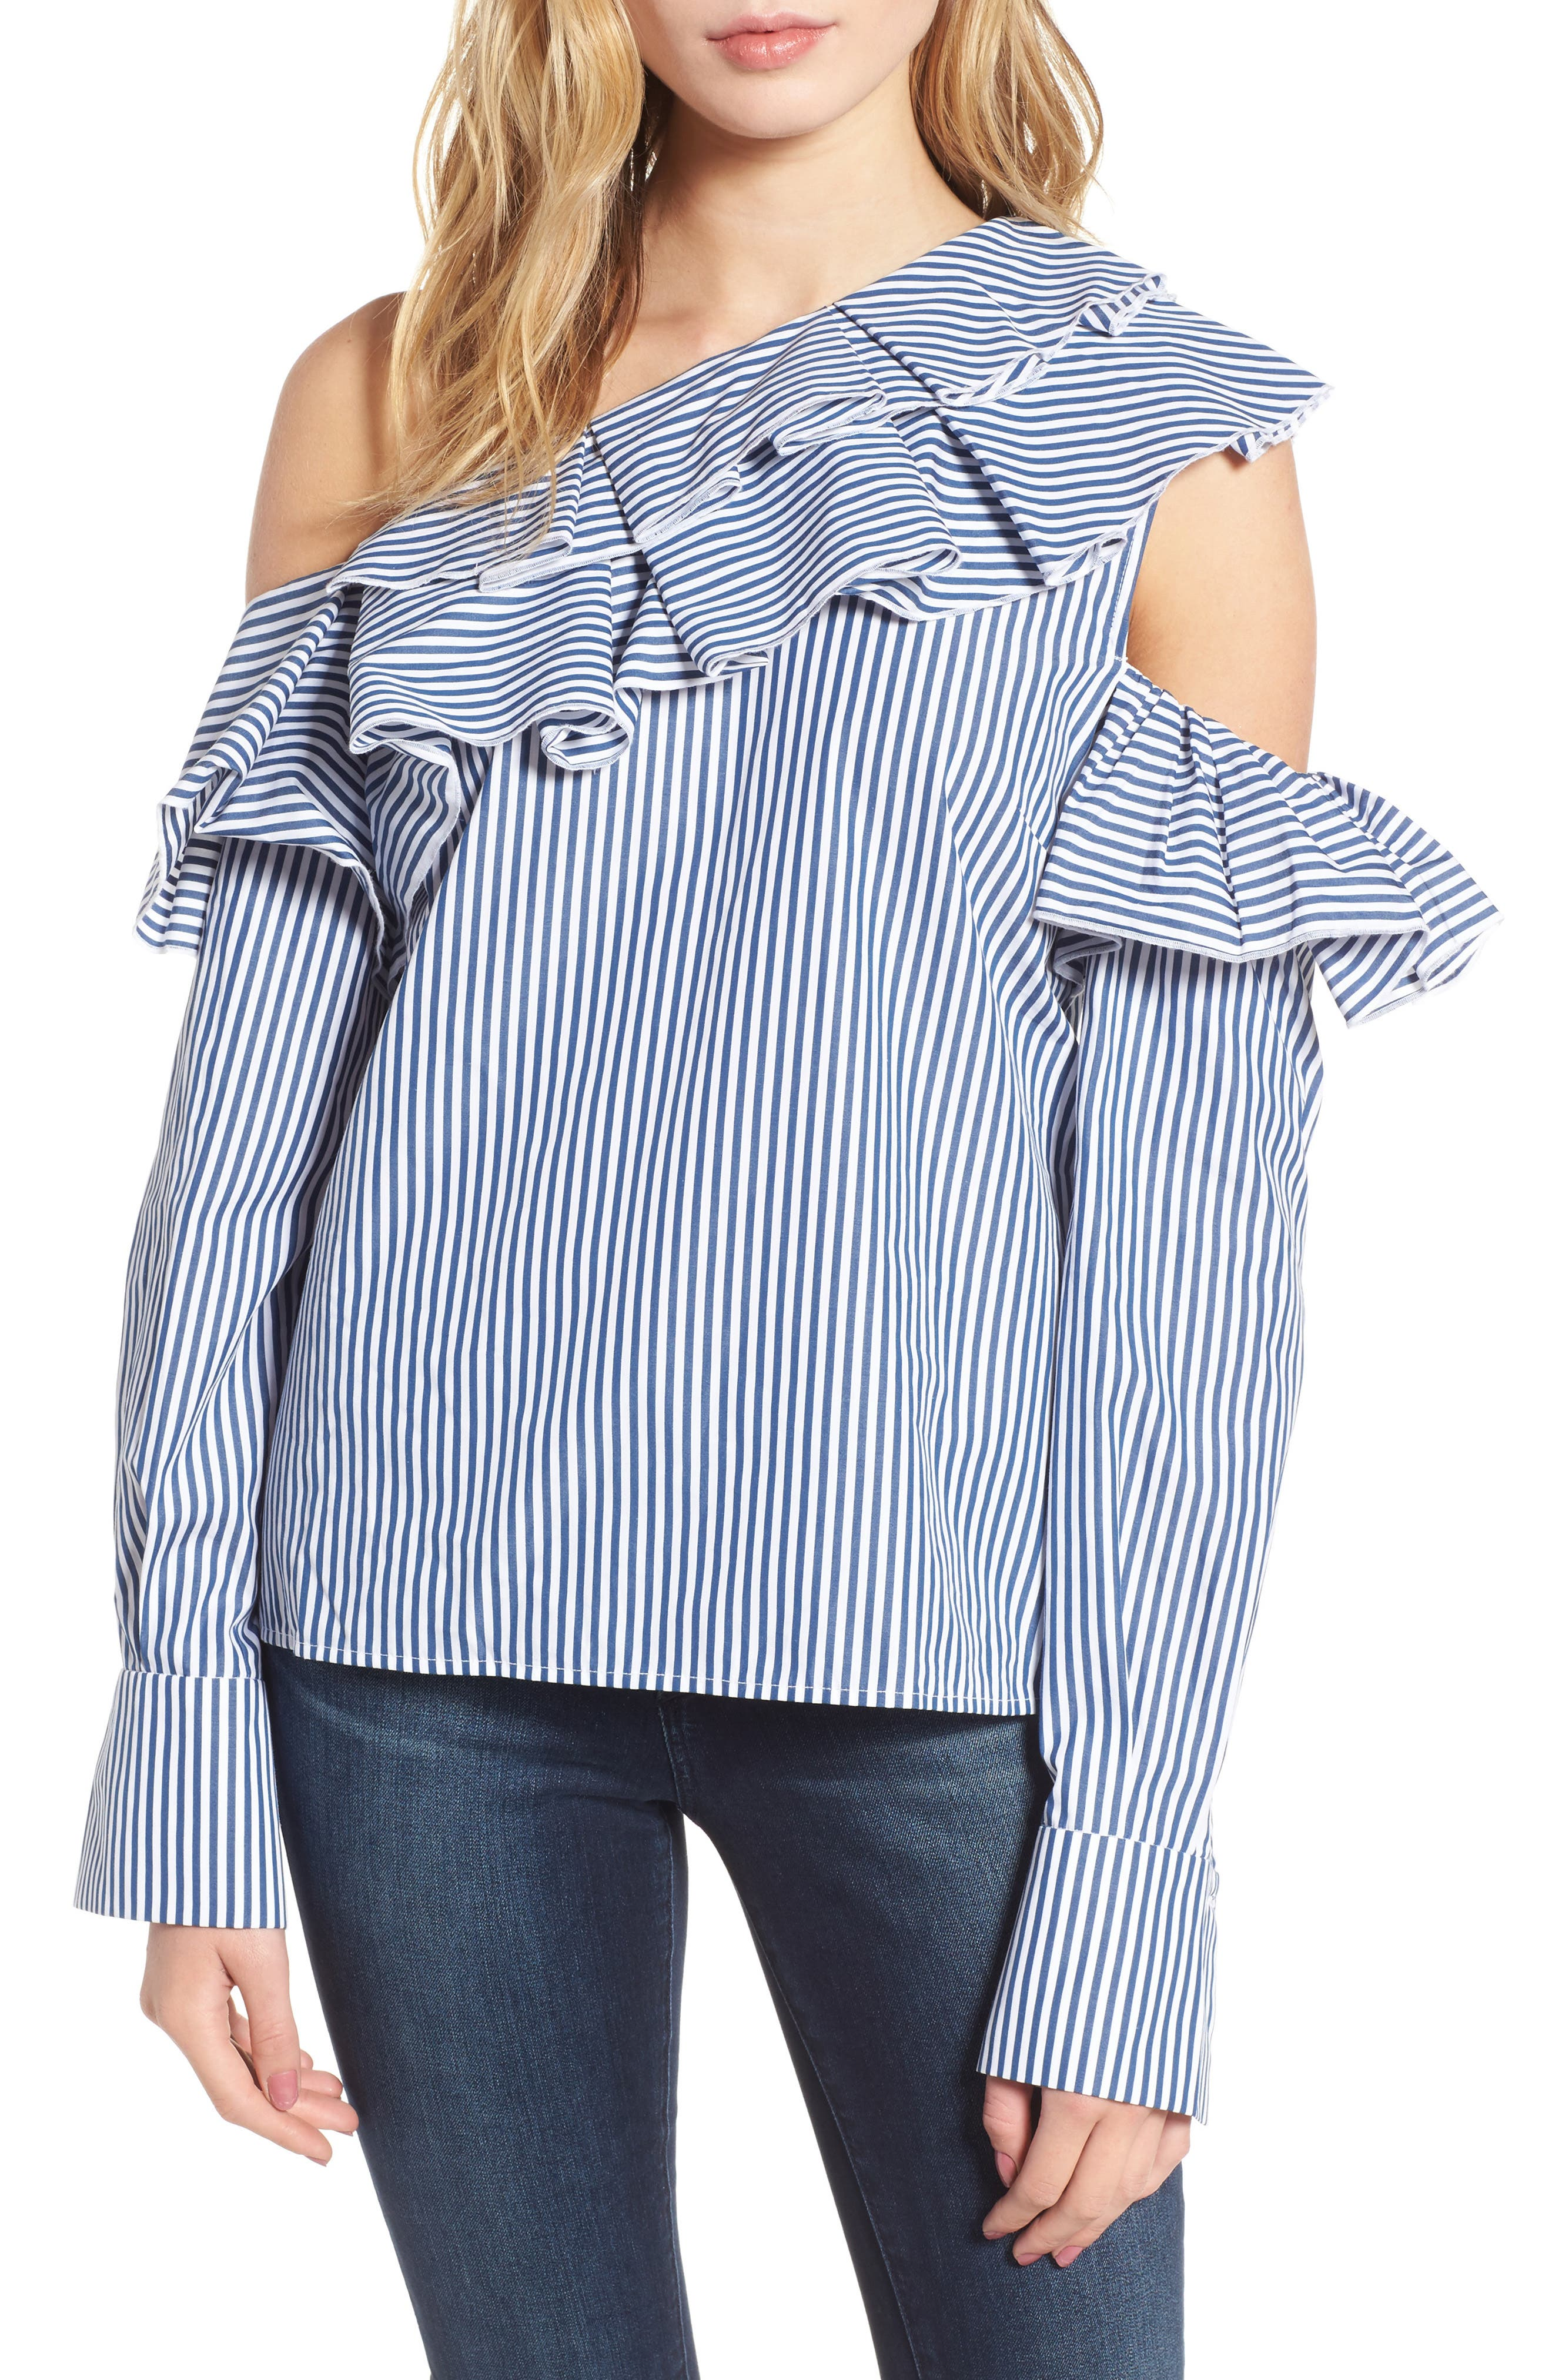 Ruffle One-Shoulder Blouse,                         Main,                         color, Navy M Betty St